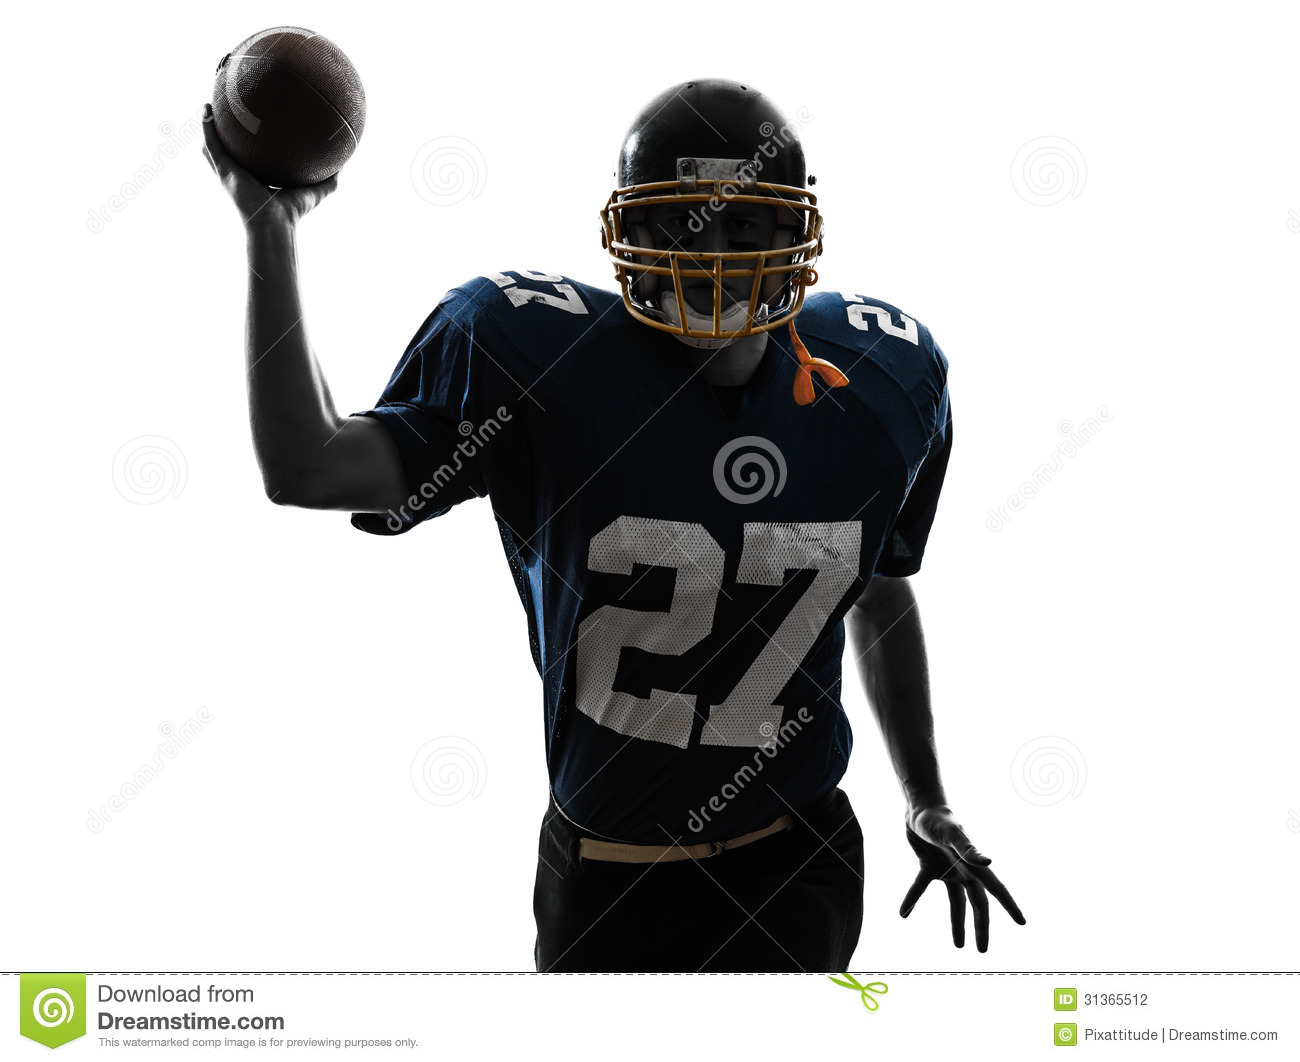 throwing a football essay Free and custom essays at essaypediacom take a look at written paper - how to throw a football.